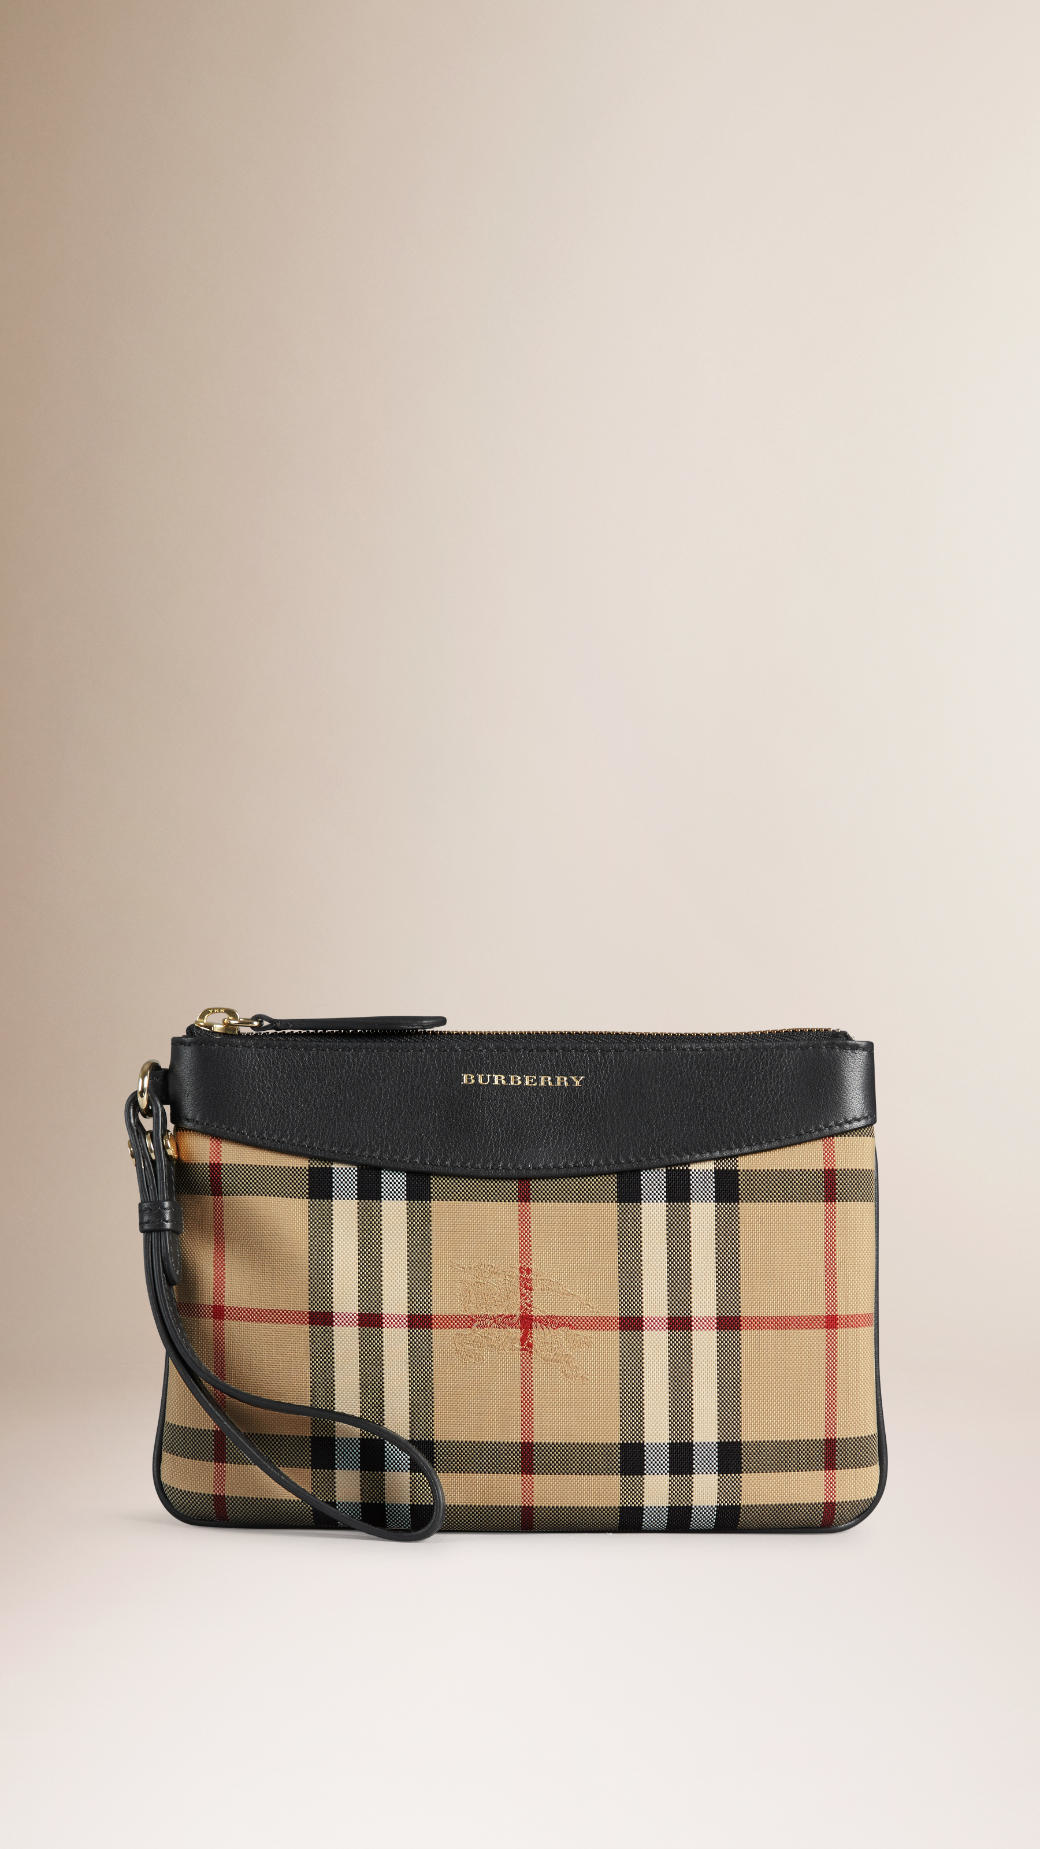 03a455d1404 Lyst - Burberry Horseferry Check And Leather Pouch in Black